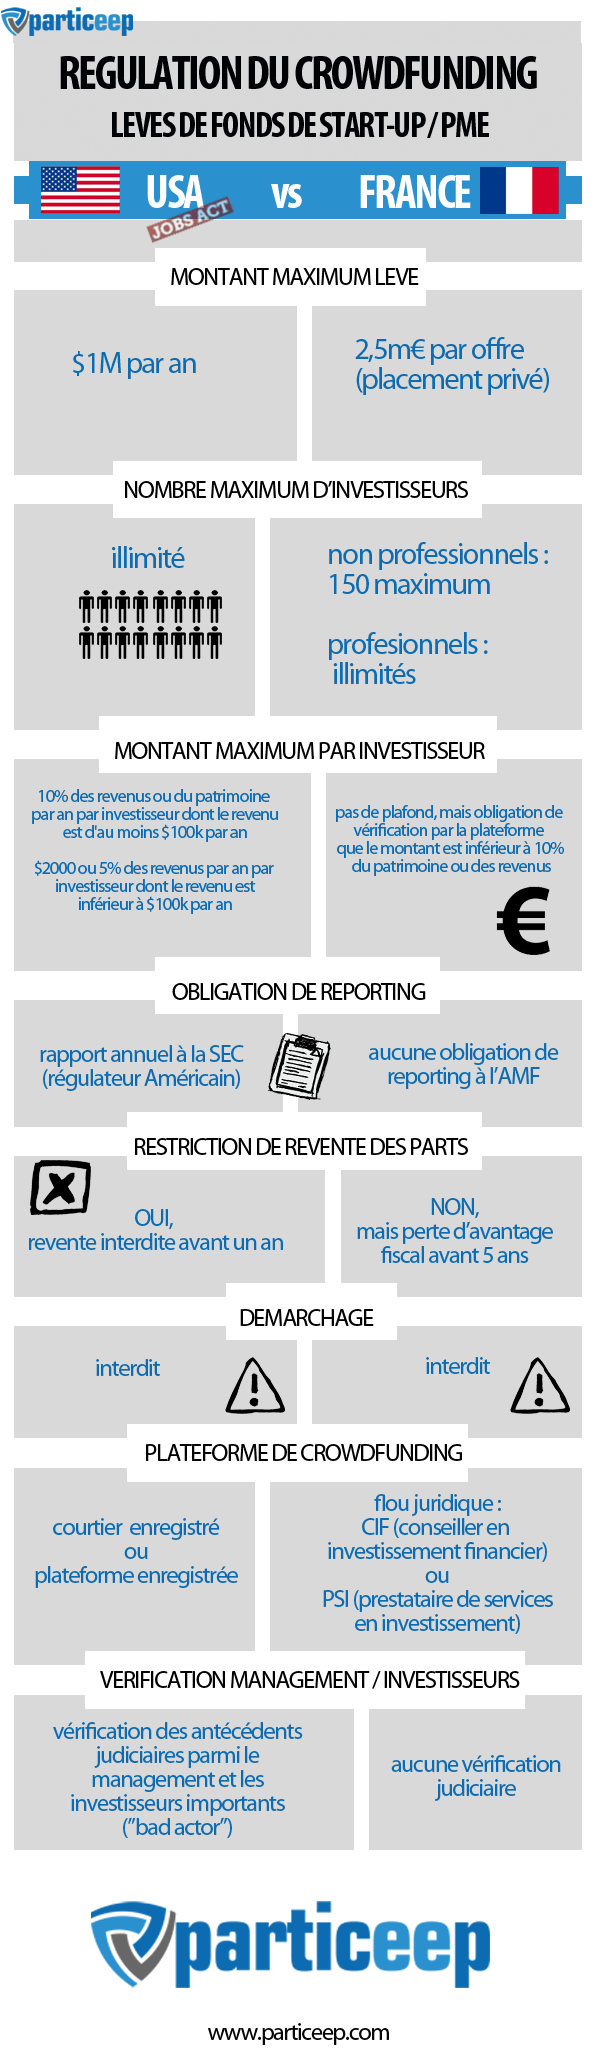 Financement participatif en France